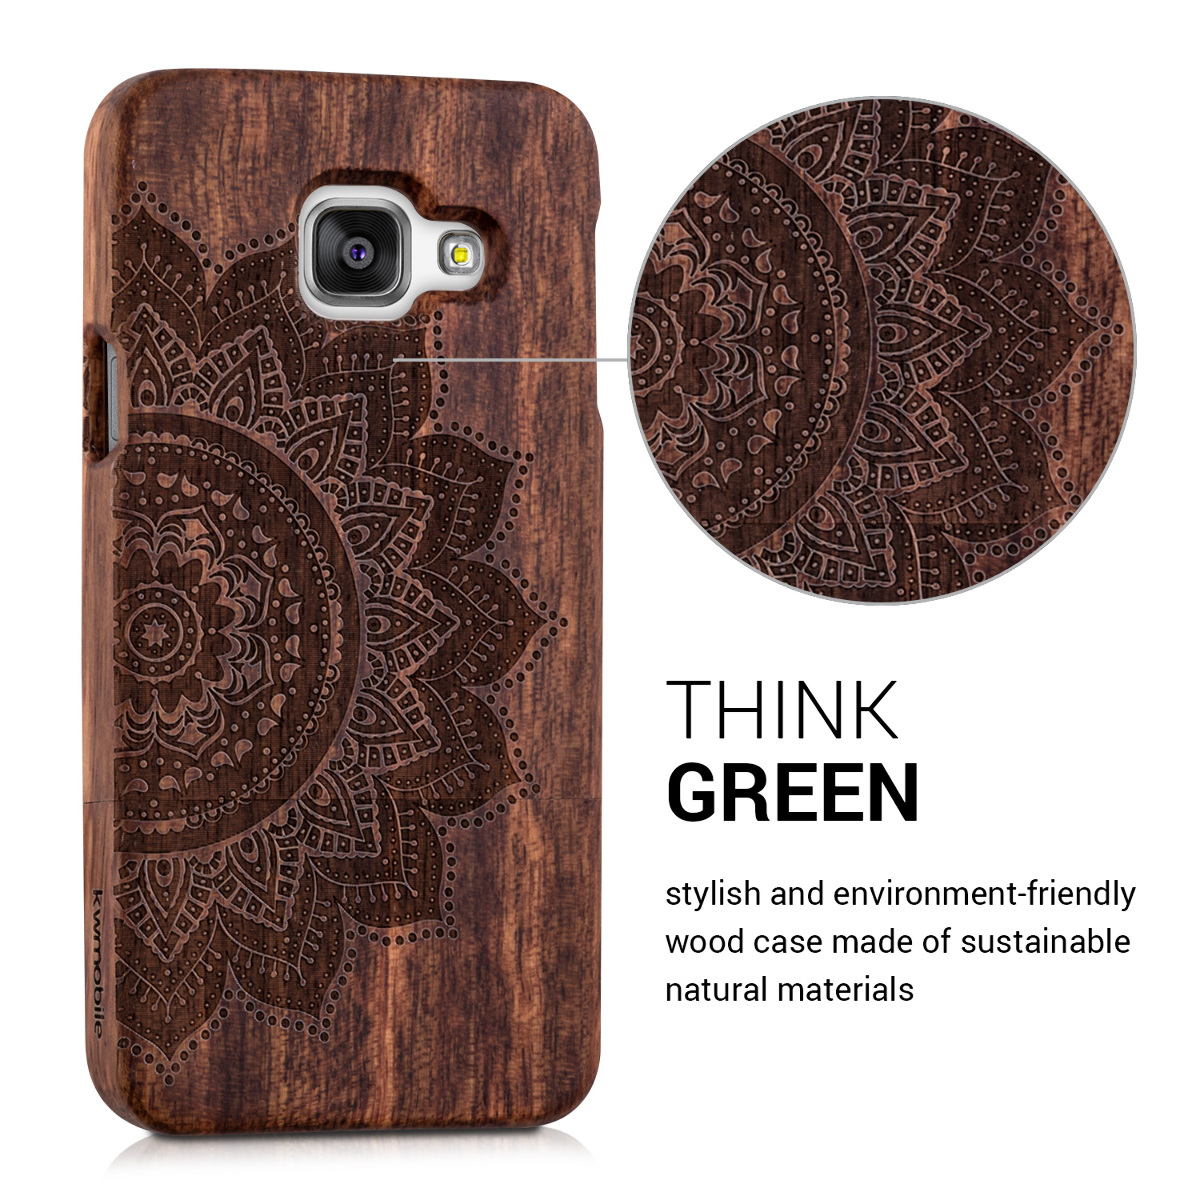 Kwmobile Natural Wood Case For The Samsung Galaxy A3 (2016) In Desired  Colour. U2039 U203a U2039 U203a U2039 U203a U2039 U203a Awesome Design